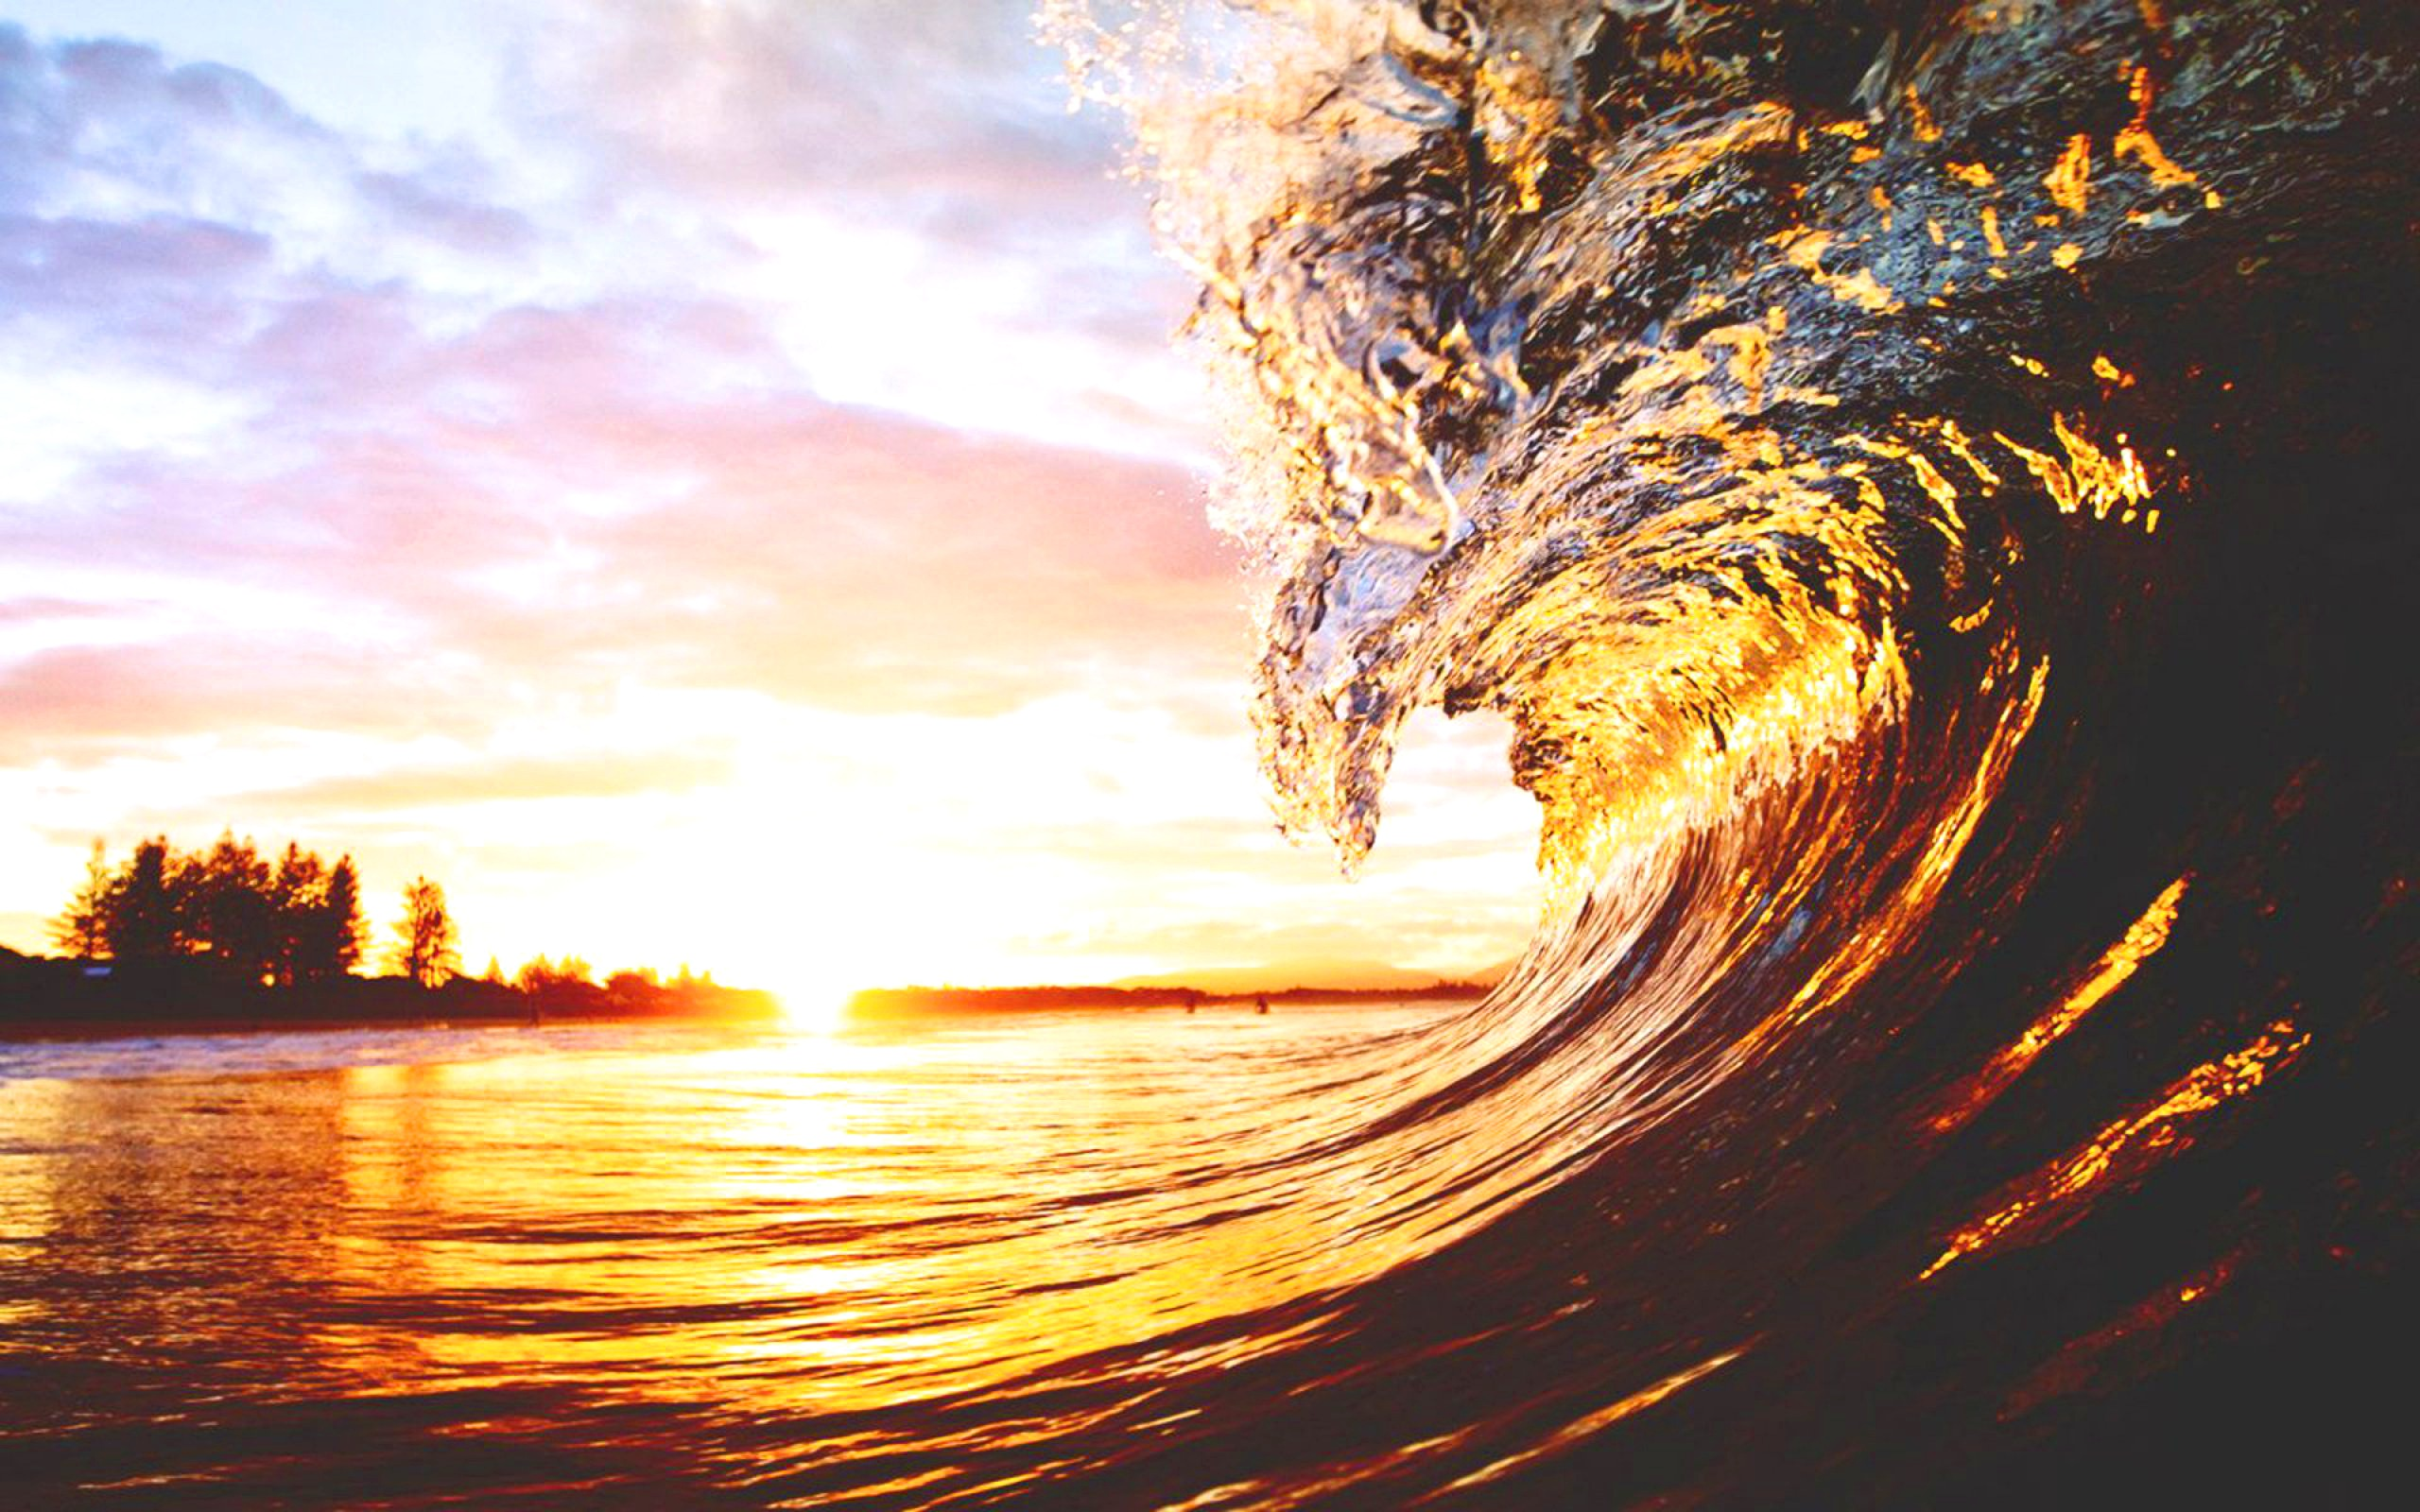 sunset_wave_hd_wallpaper